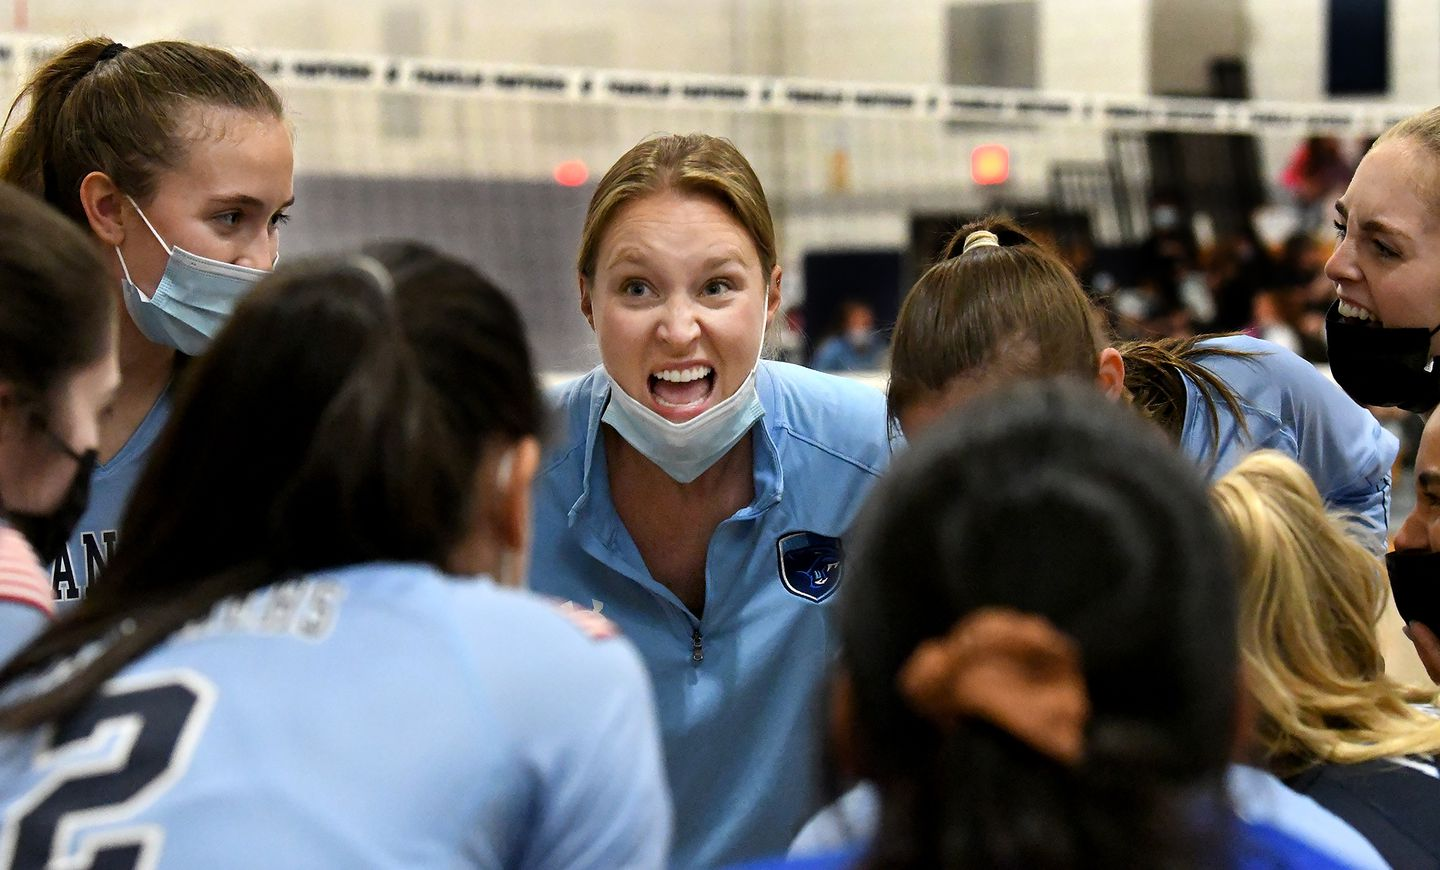 Franklin coach Samantha Redmond fires up her team during a win over Stoughton. MARK STOCKWELL FOR THE BOSTON GLOBE